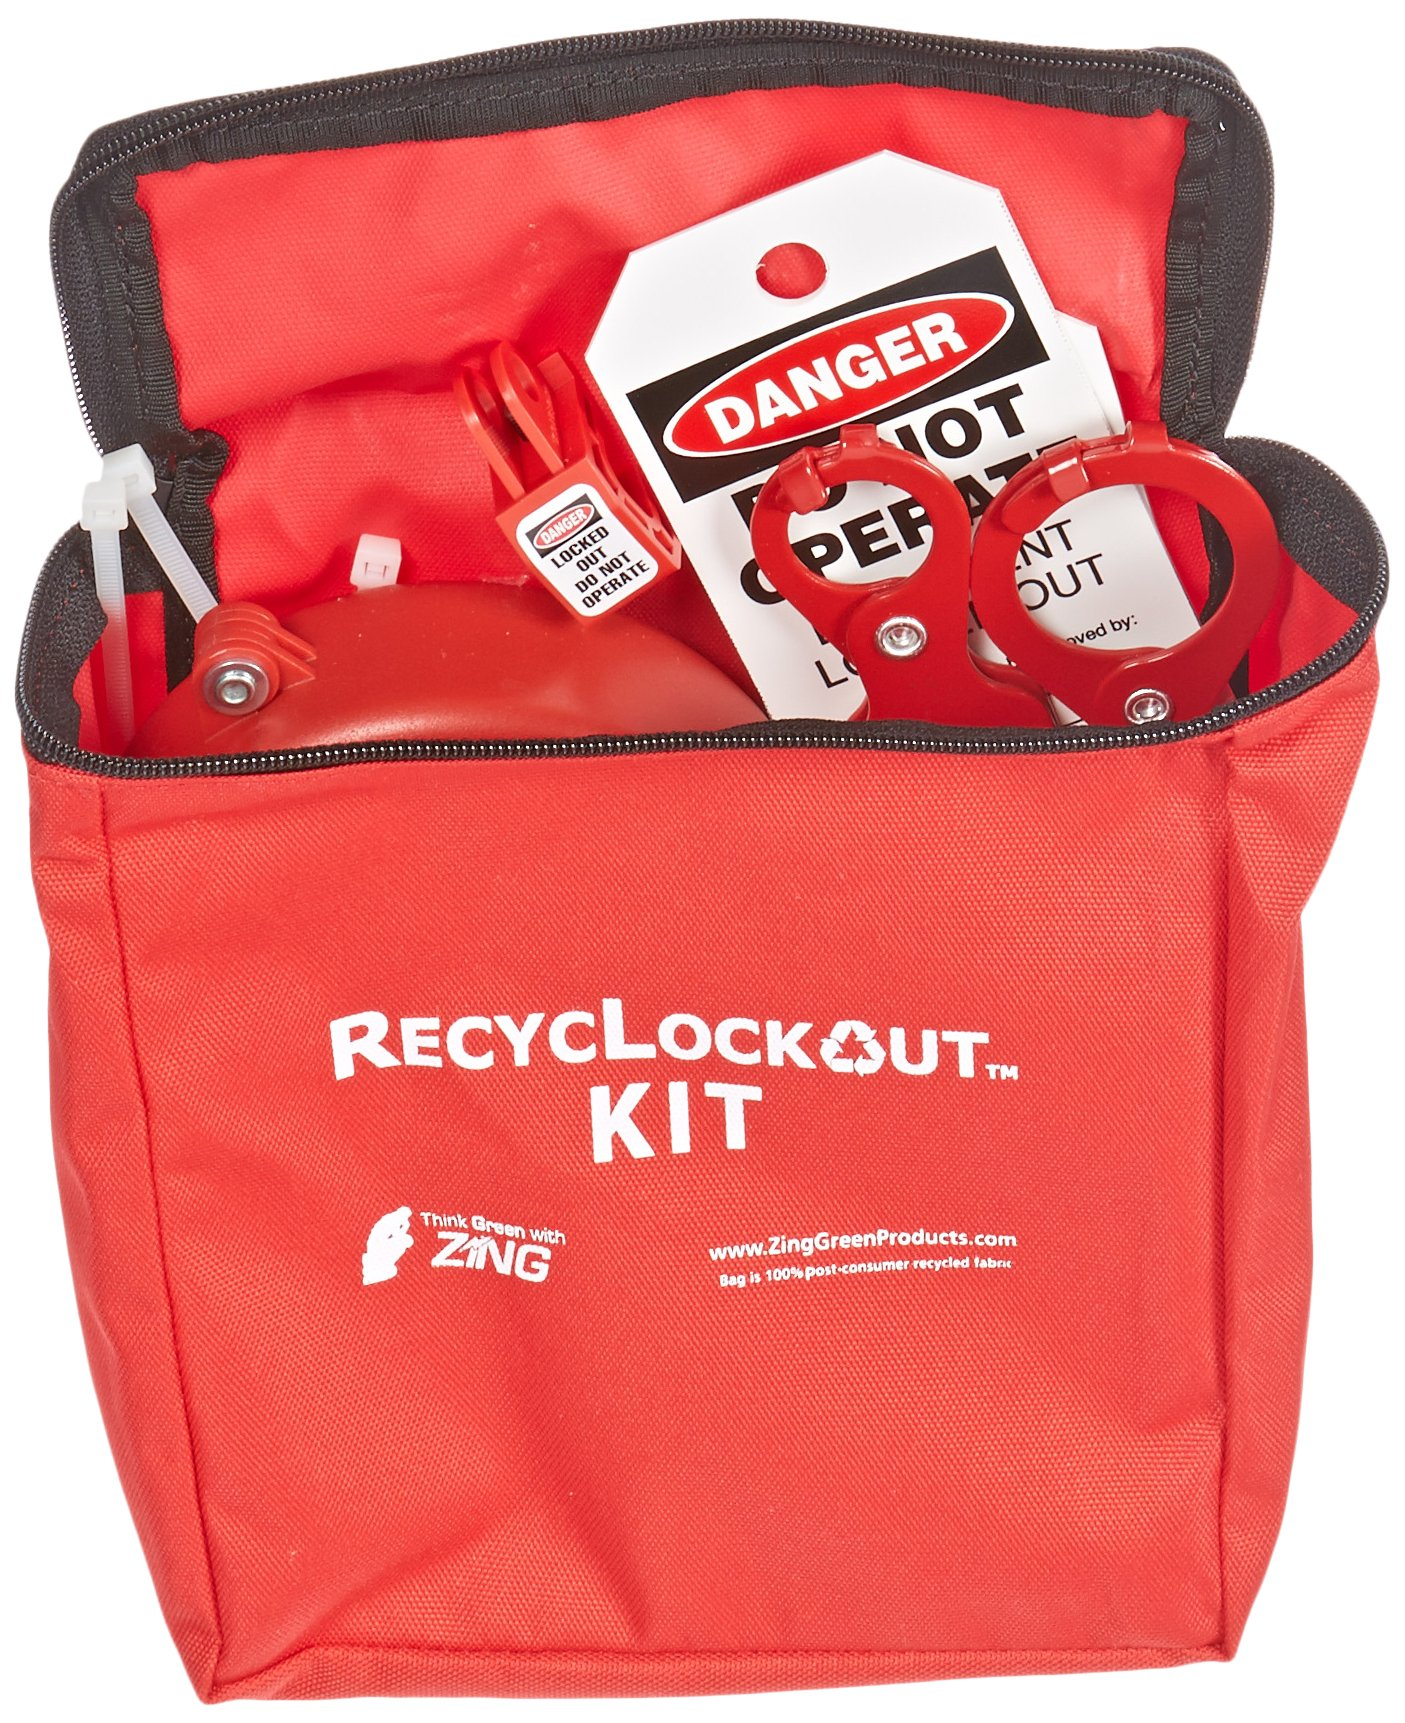 ZING 7120 RecycLockout Lockout Tagout Kit, 12 Component, Valve Lockout by Zing Green Products (Image #3)